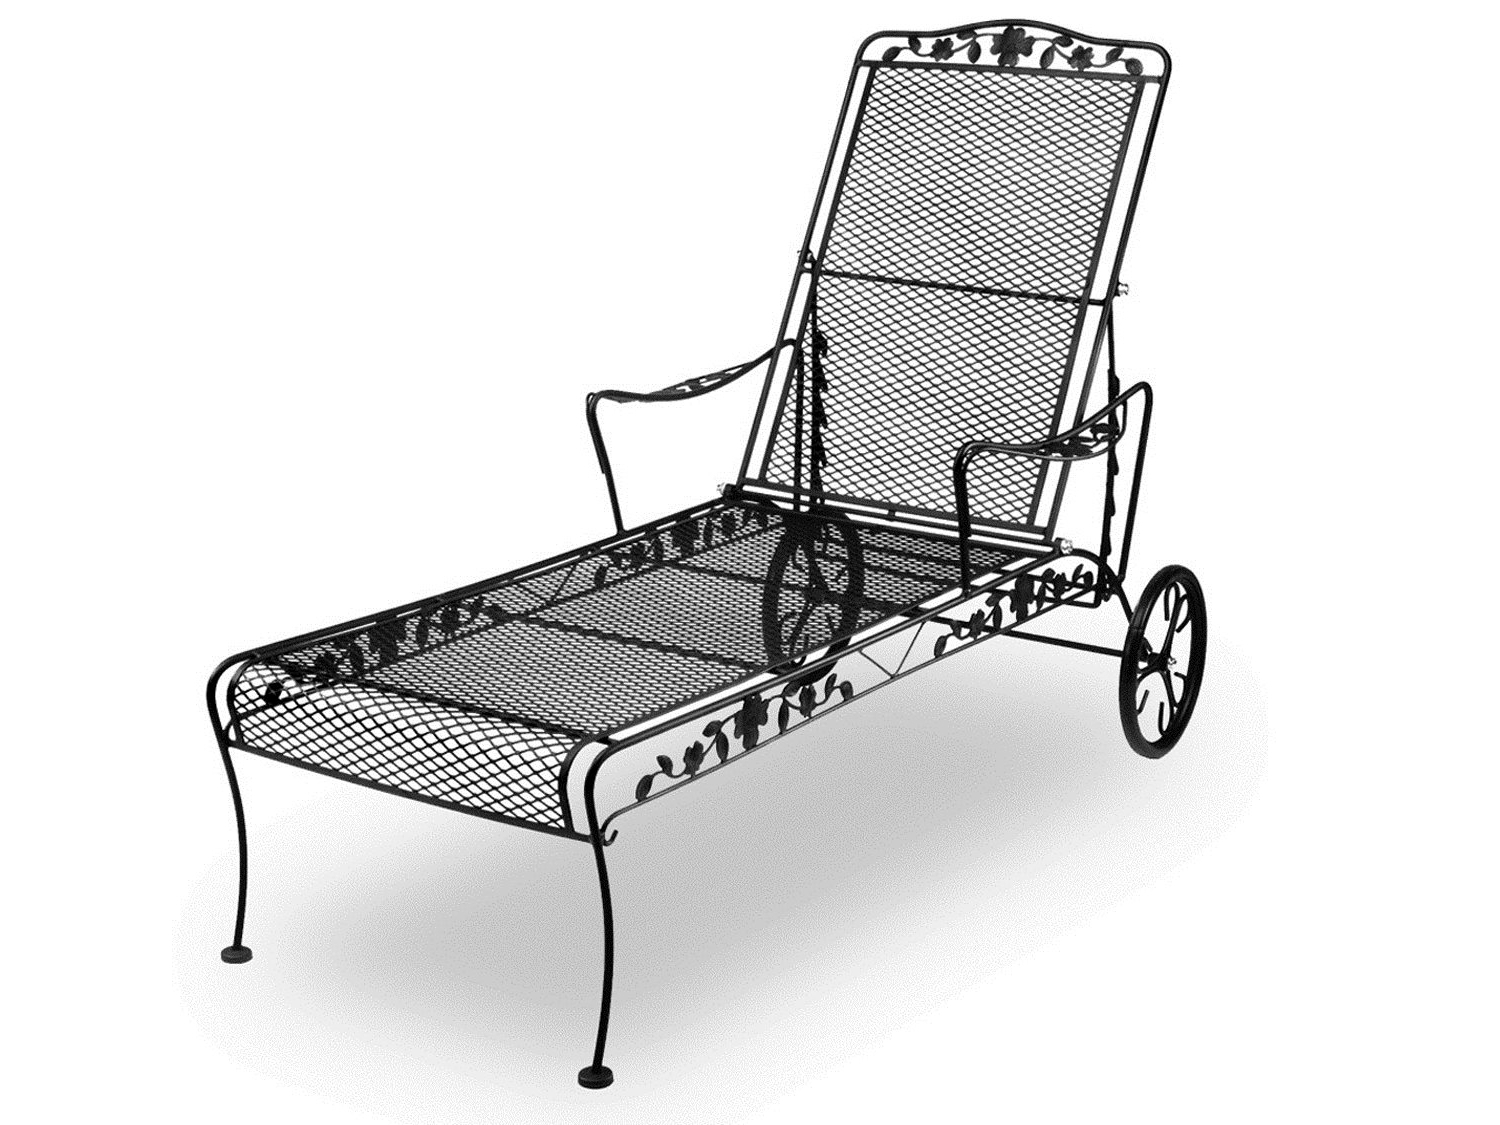 Most Popular Wrought Iron Chaise Lounge Chairs • Lounge Chairs Ideas In Wrought Iron Outdoor Chaise Lounge Chairs (View 7 of 15)